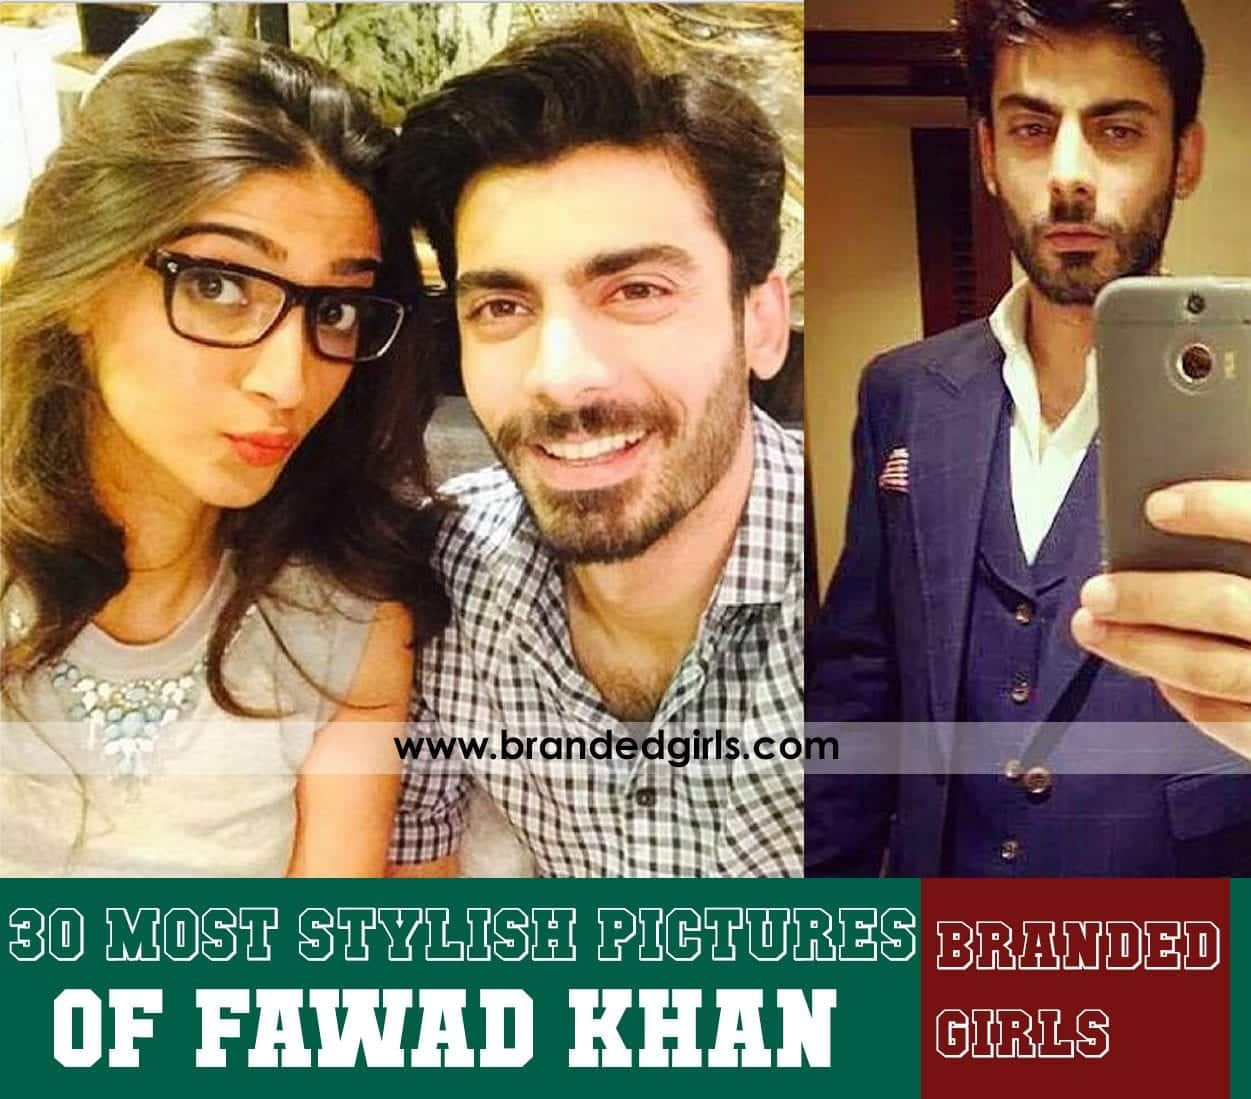 polyvore-sample-3 Fawad Khan Pictures - 30 Most Stylish Pictures of Fawad Khan